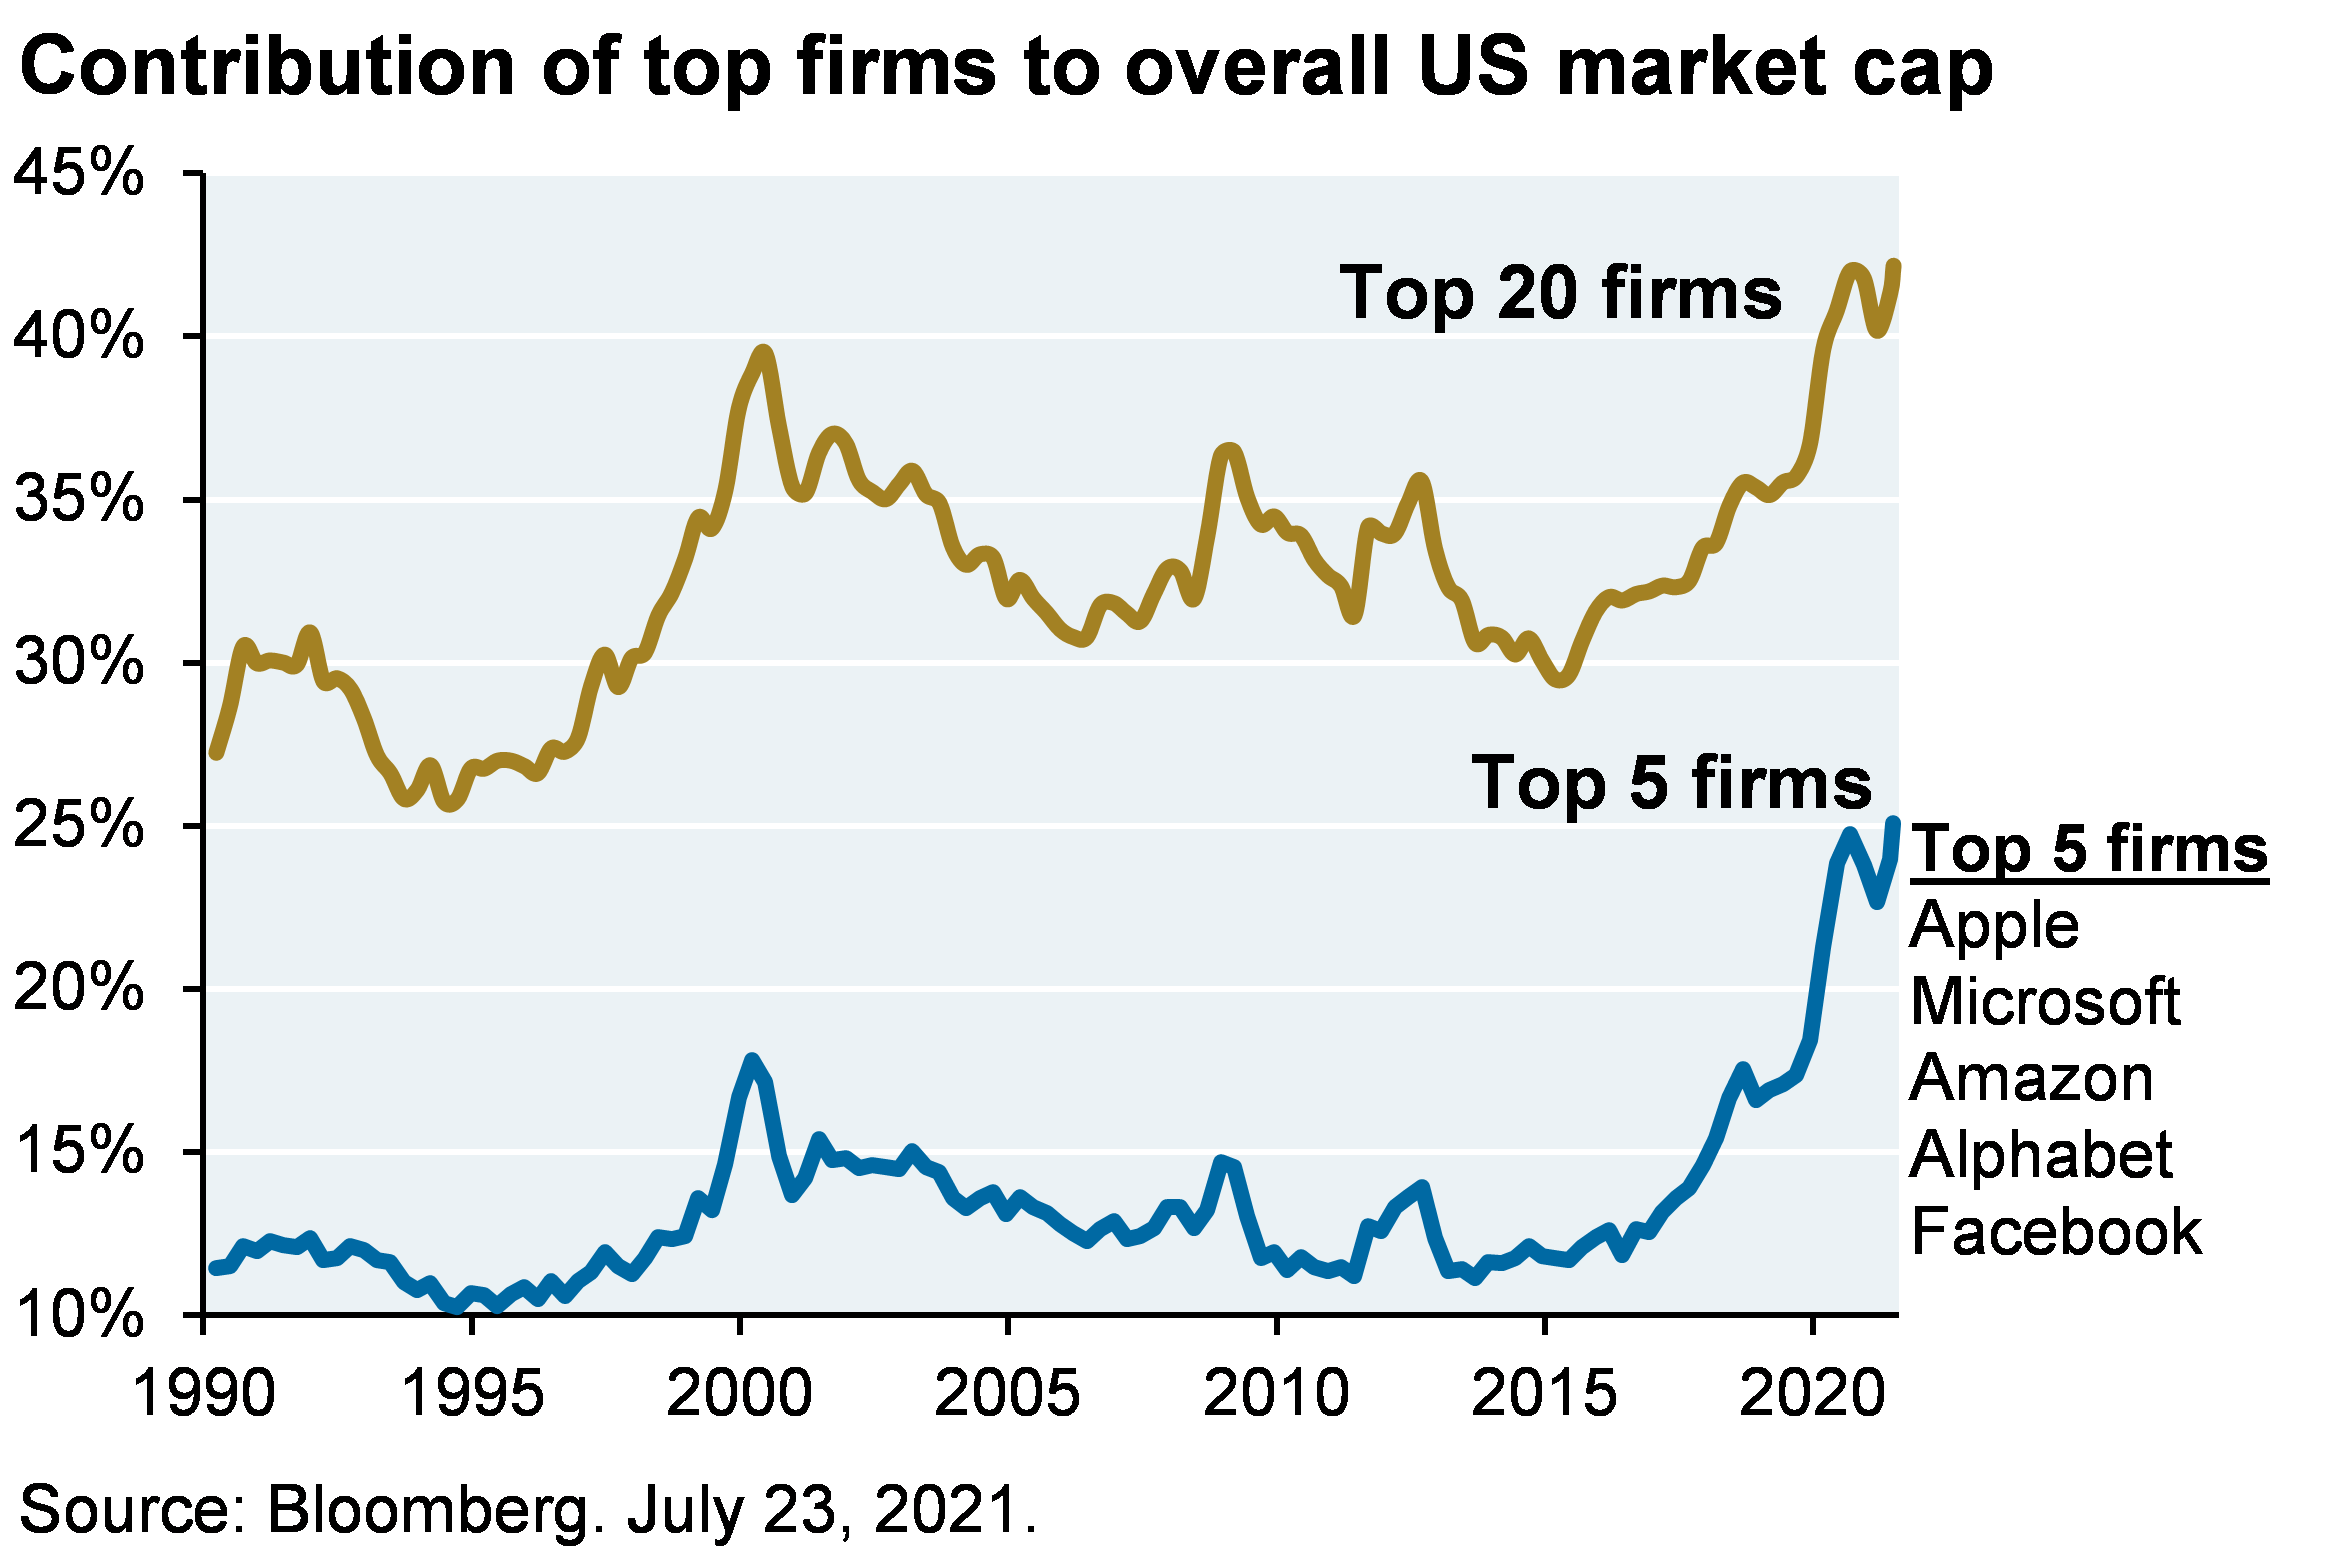 Line chart shows the contribution of the top 20 firms to the overall US market cap compared to the contribution of the top 5 firms to the overall US market cap from 1990 to 2021. Both lines have been increasing since 2015 and are currently at all-time highs. The top 5 firms (Apple, Microsoft, Amazon, Alphabet and Facebook) show an even more drastic increase.